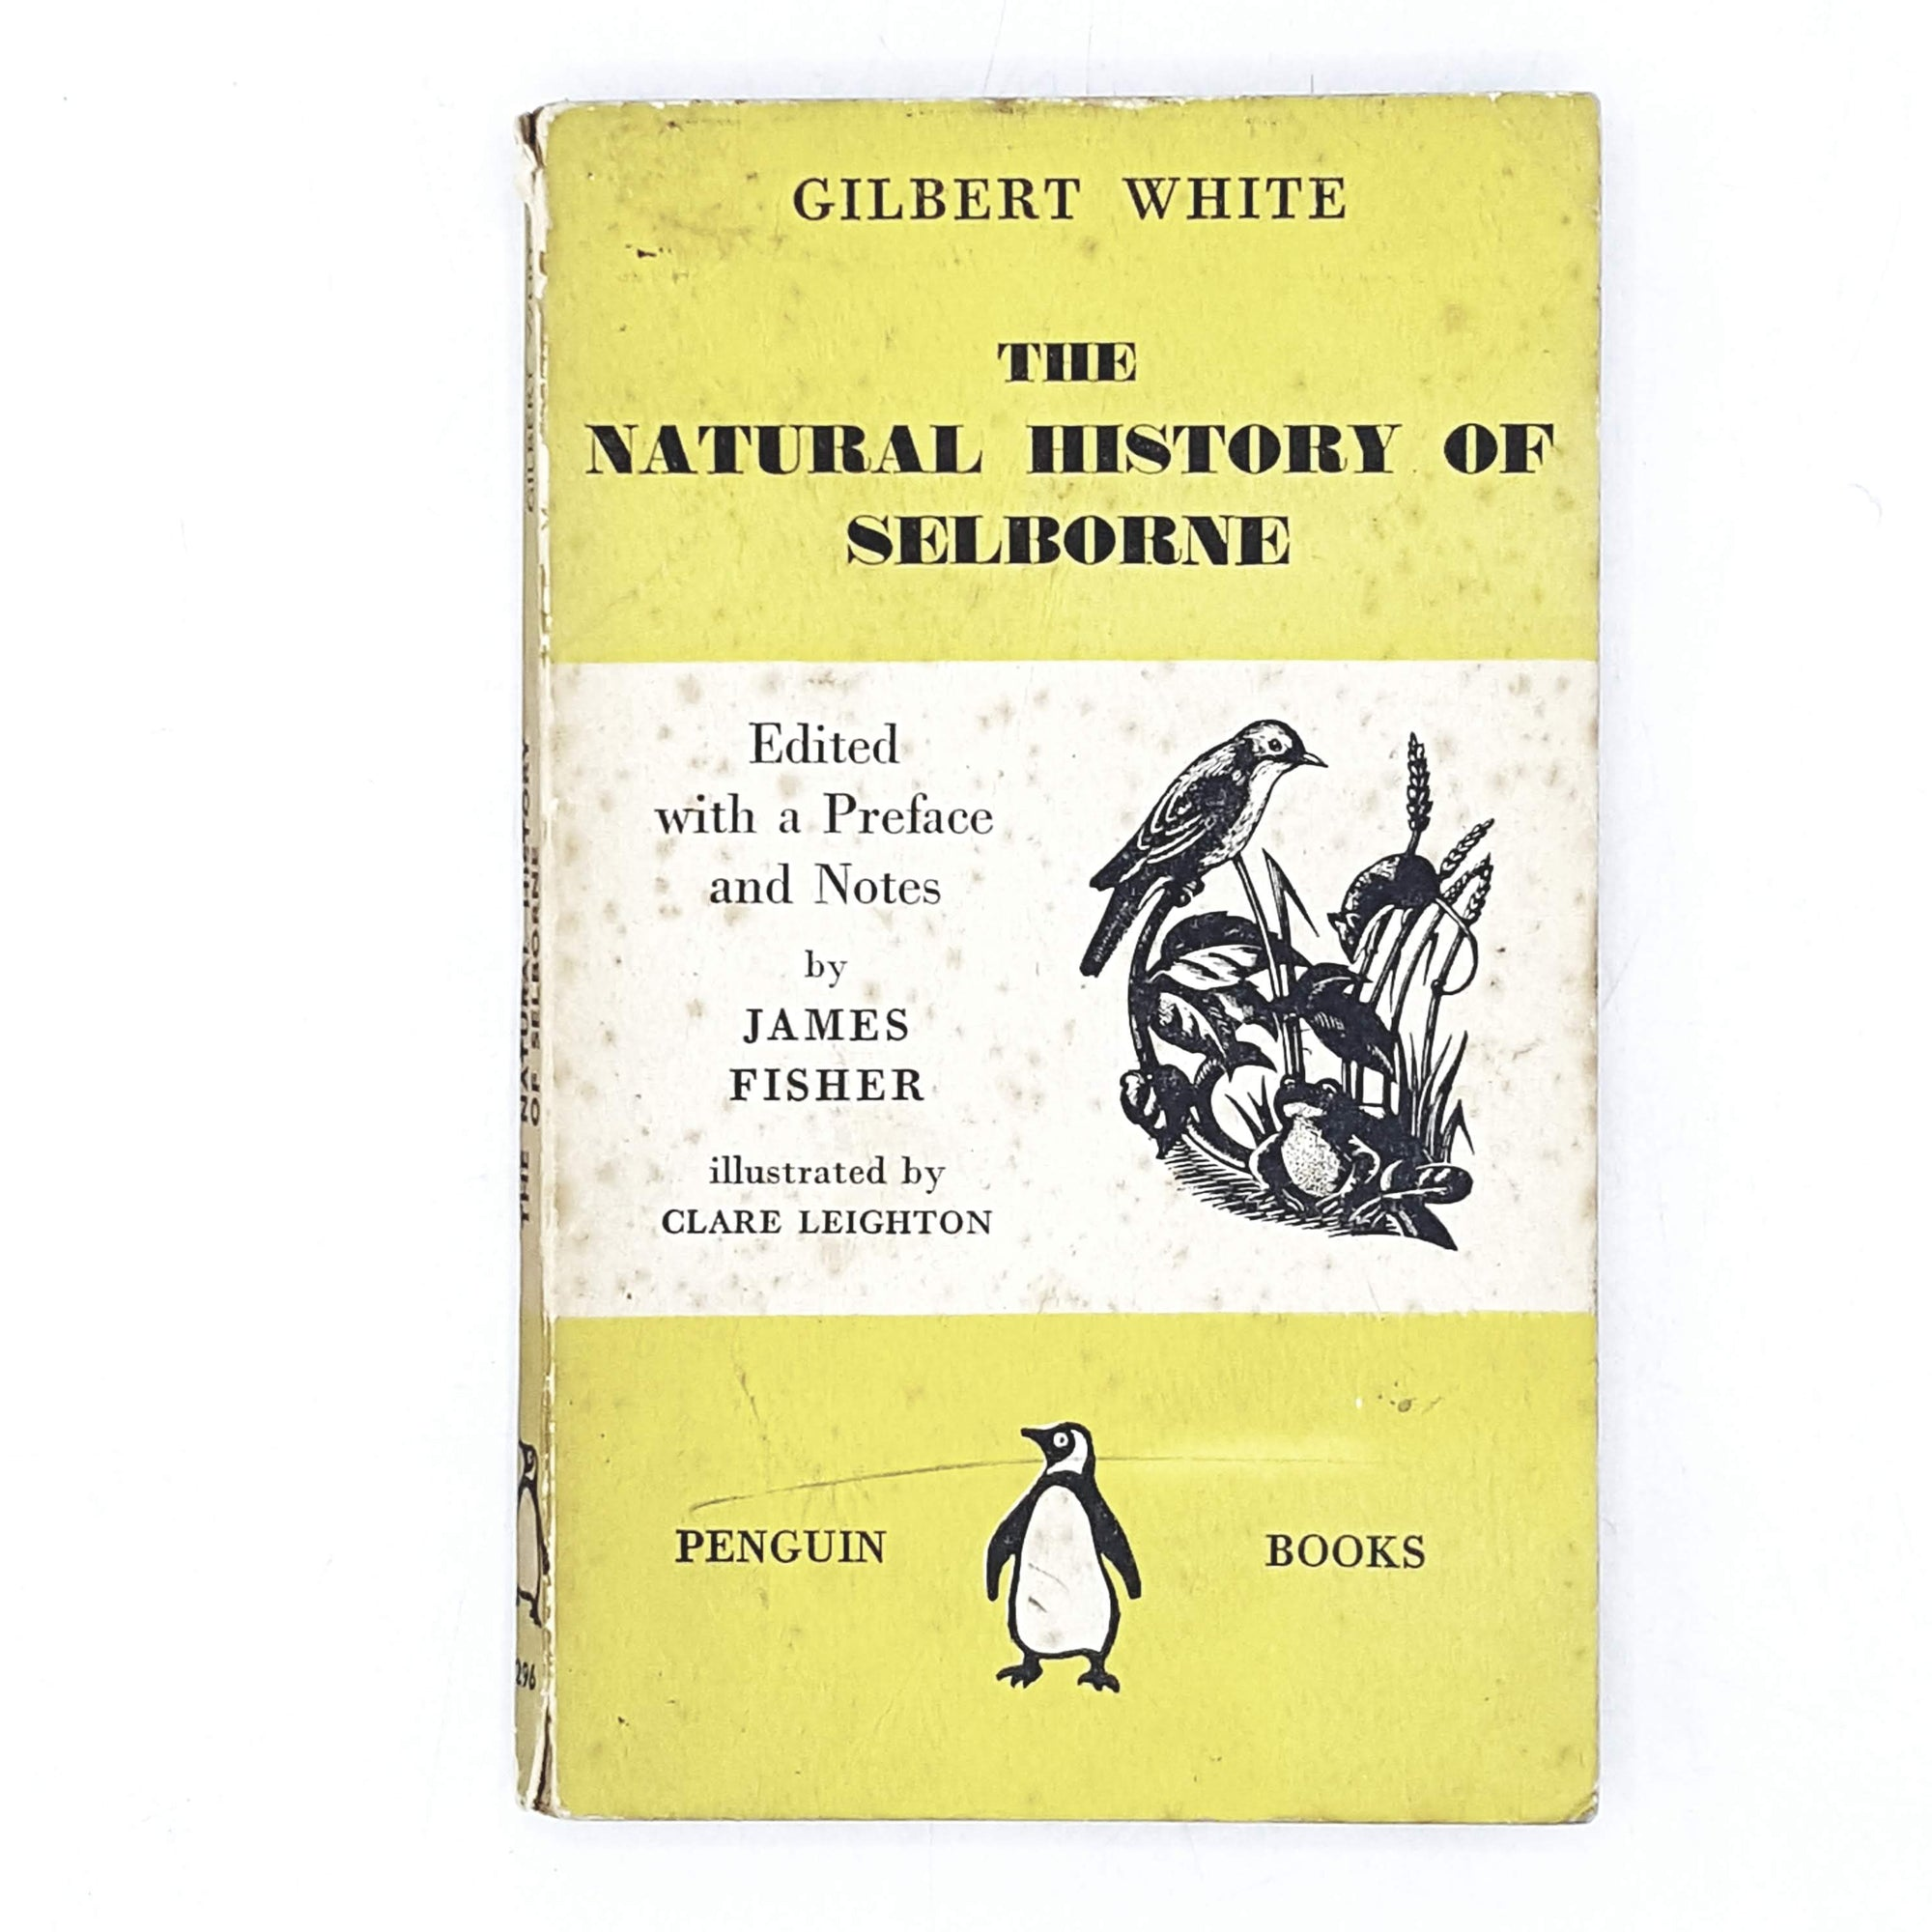 Vintage Penguin The Natural History of Selborne by Gilbert White 1941